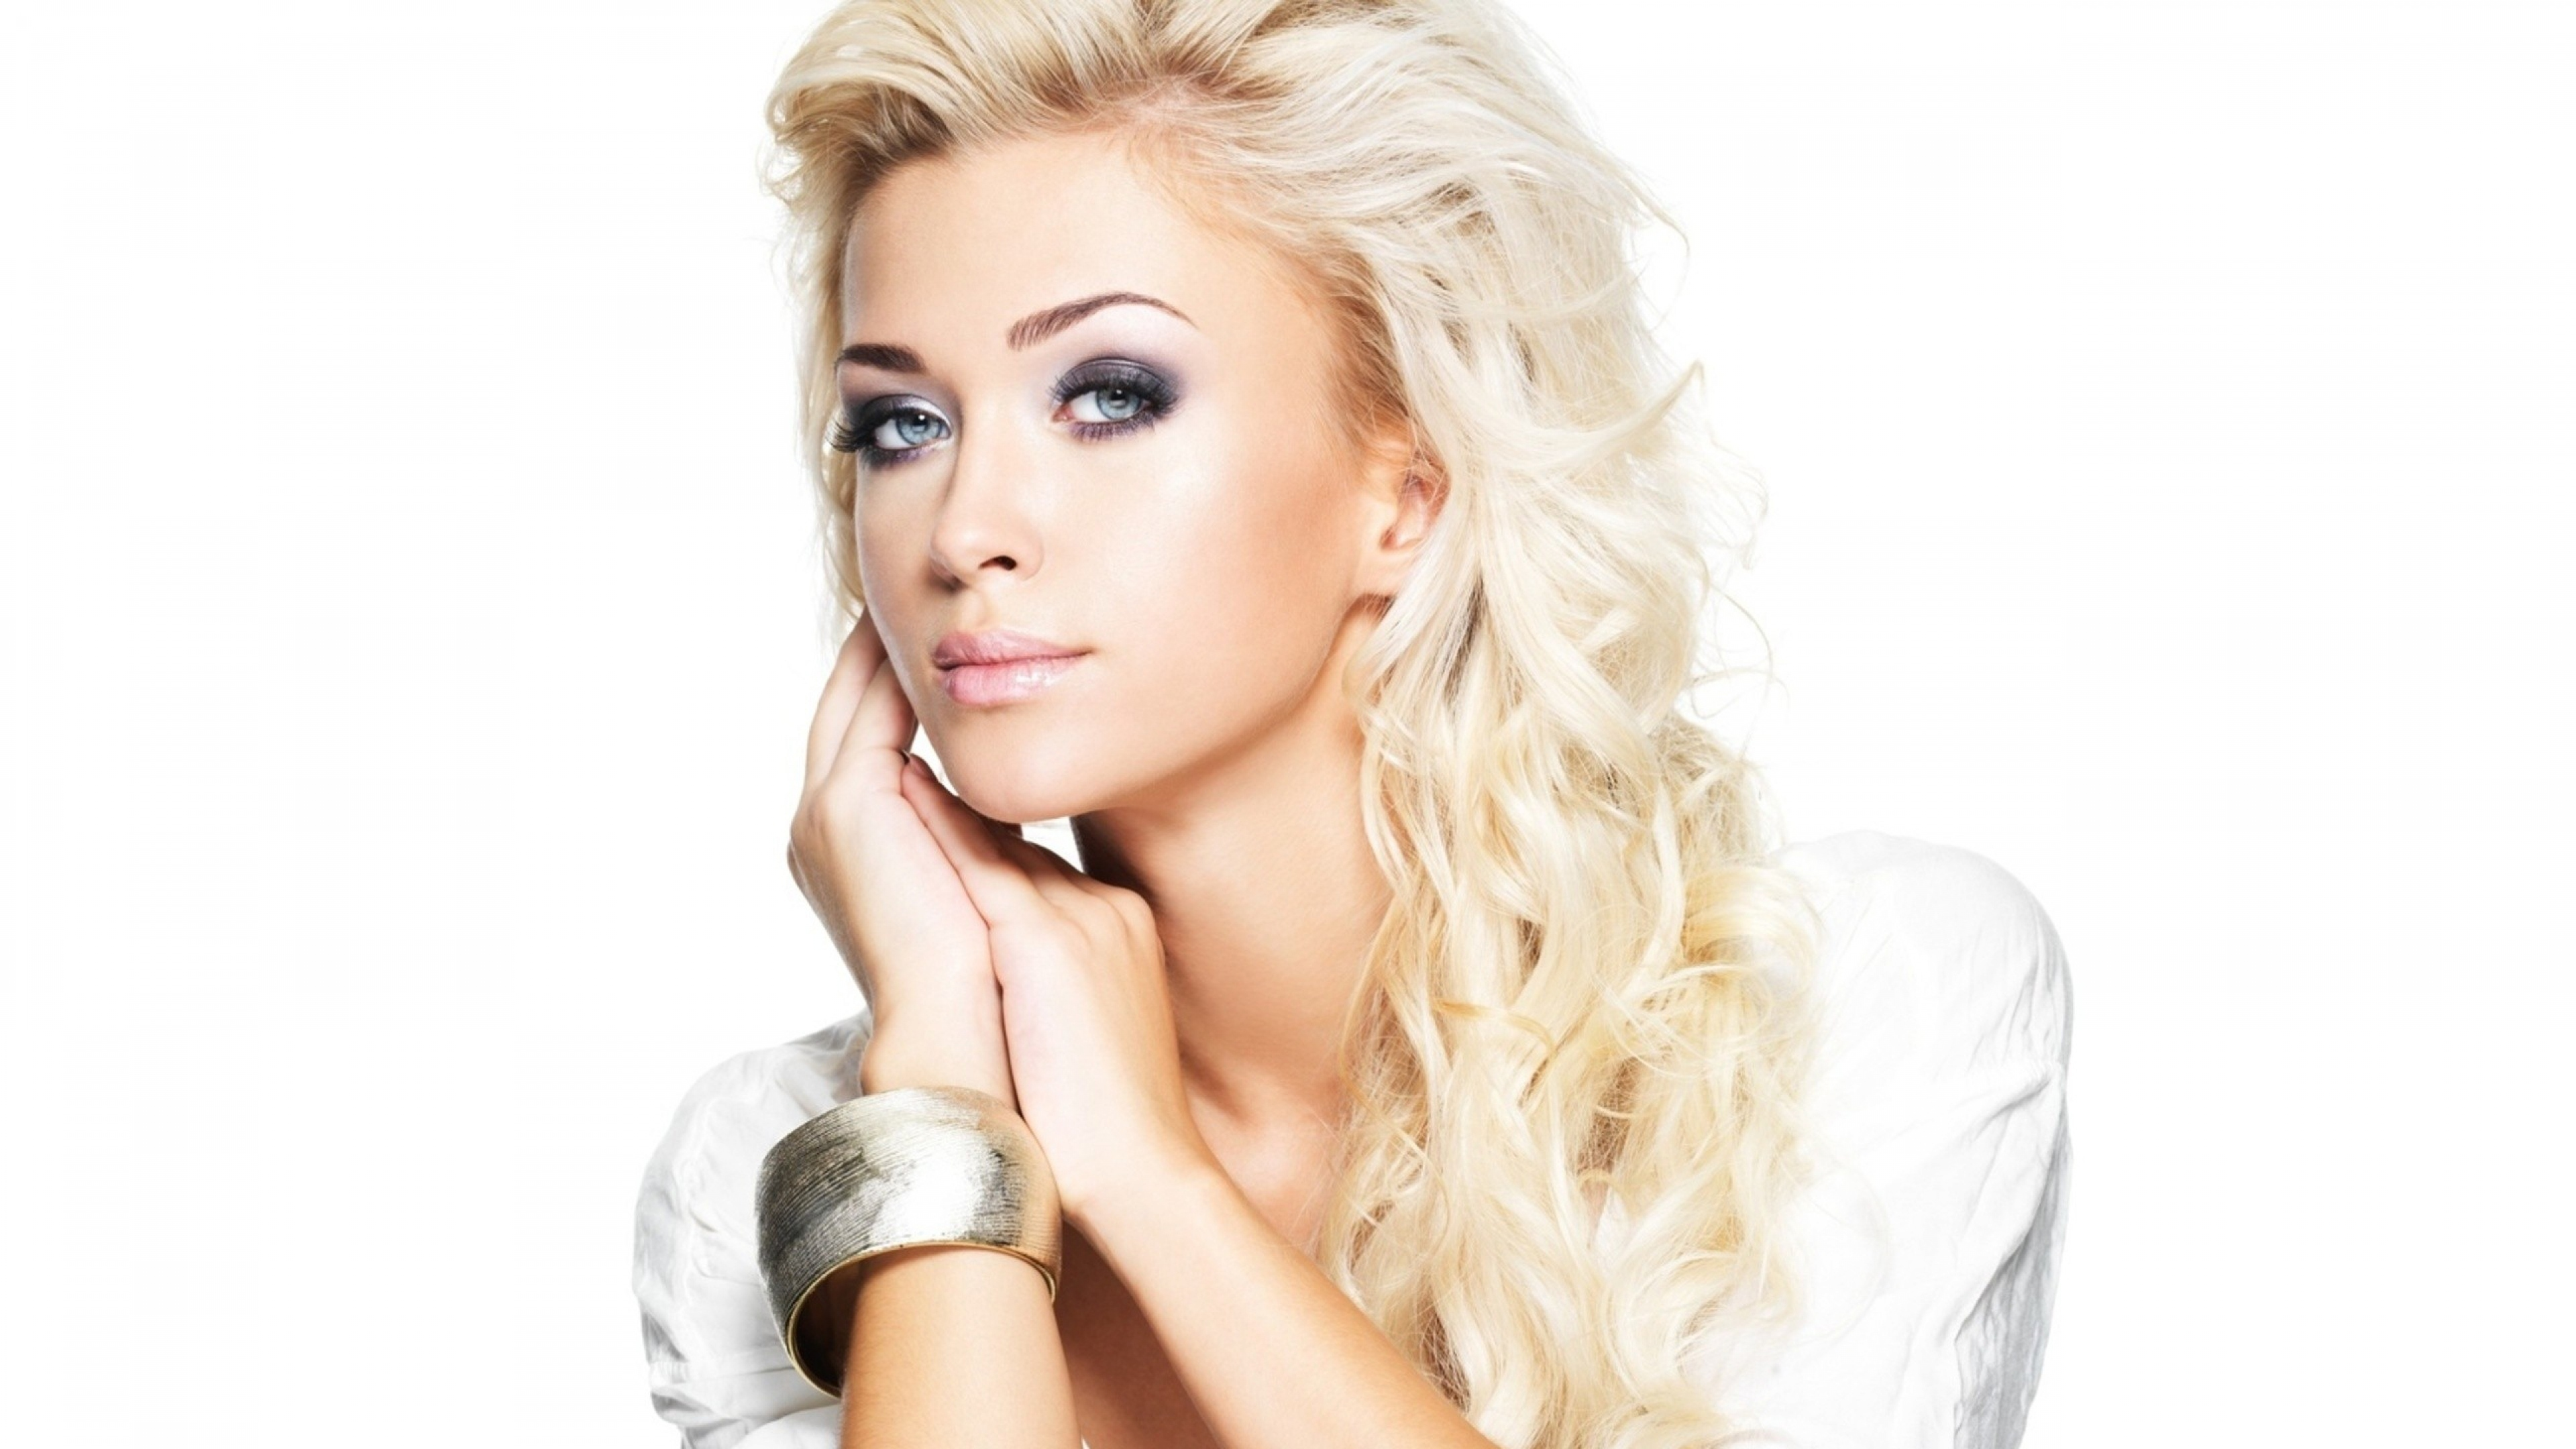 Beautiful Blondes Wallpapers Images Photos Pictures ...